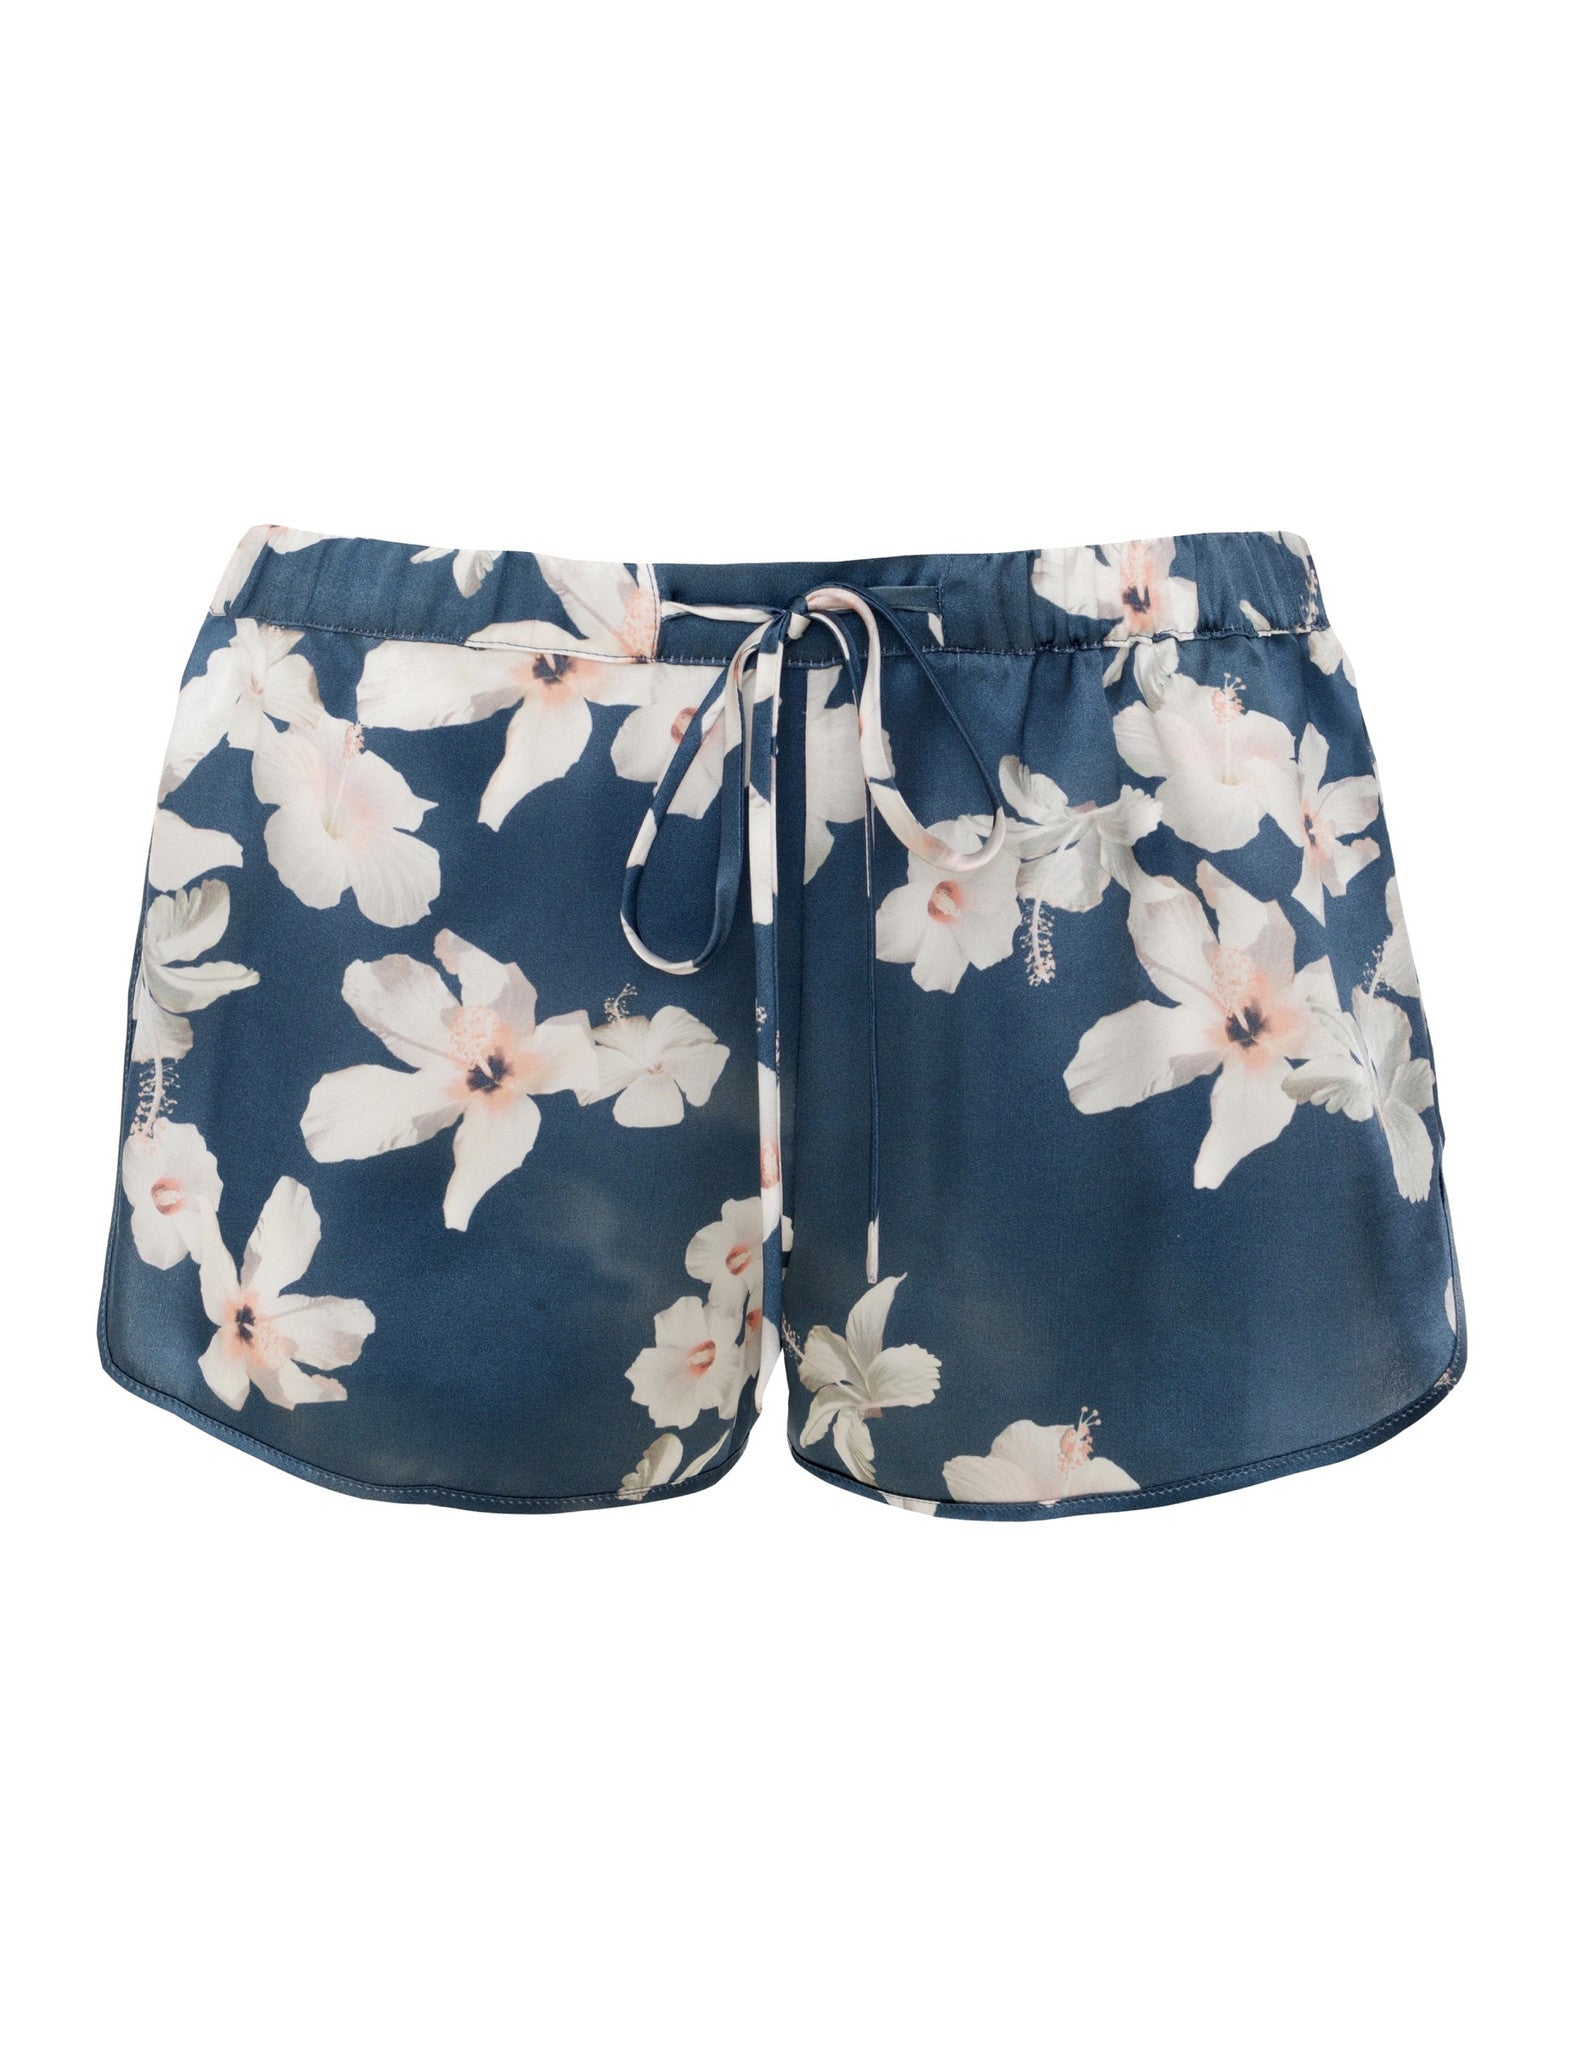 Hibiscus silk shorts